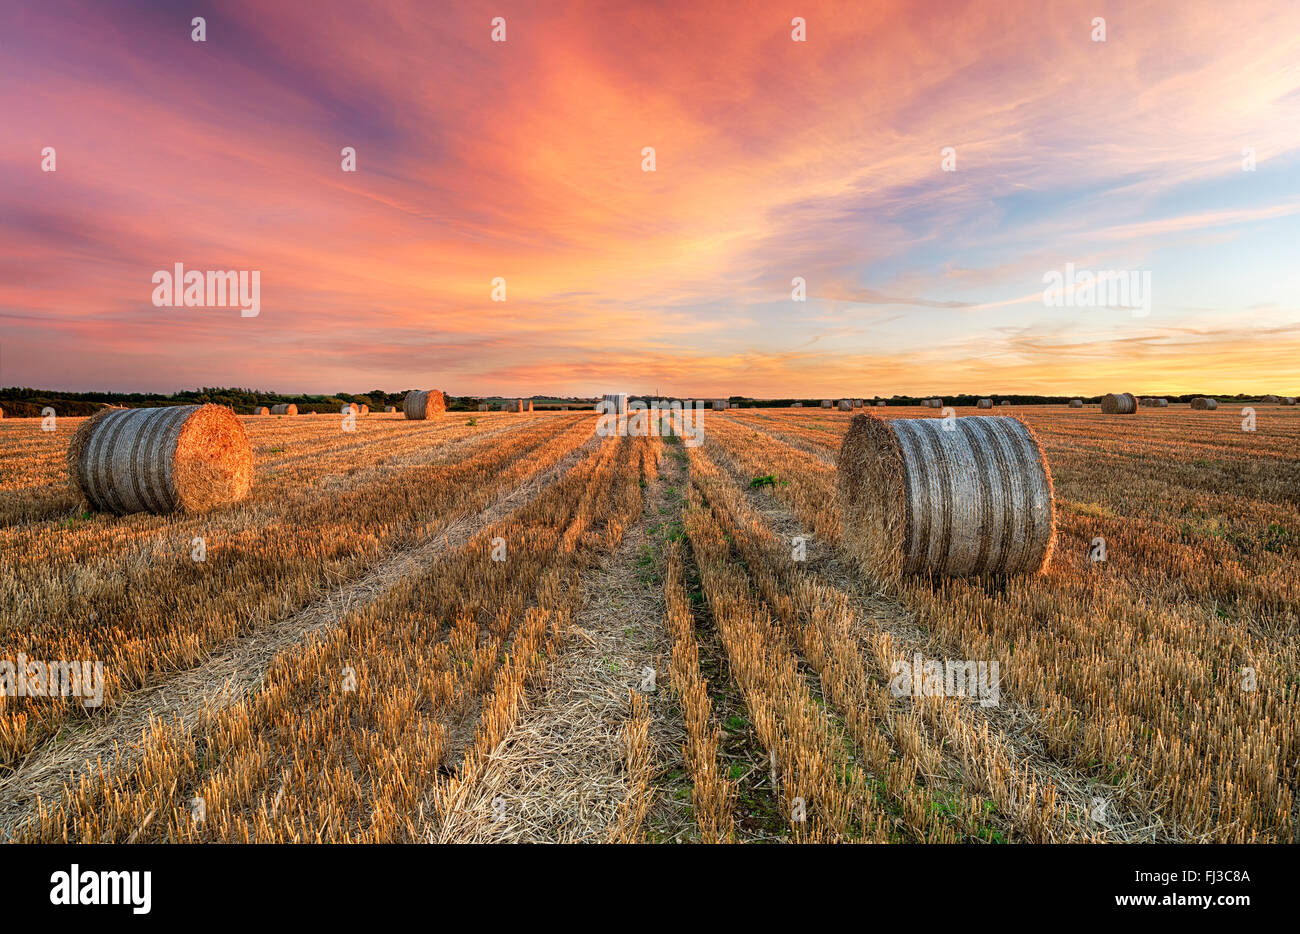 Stunning sunset over hay bales near Crantock in Cornwall - Stock Image